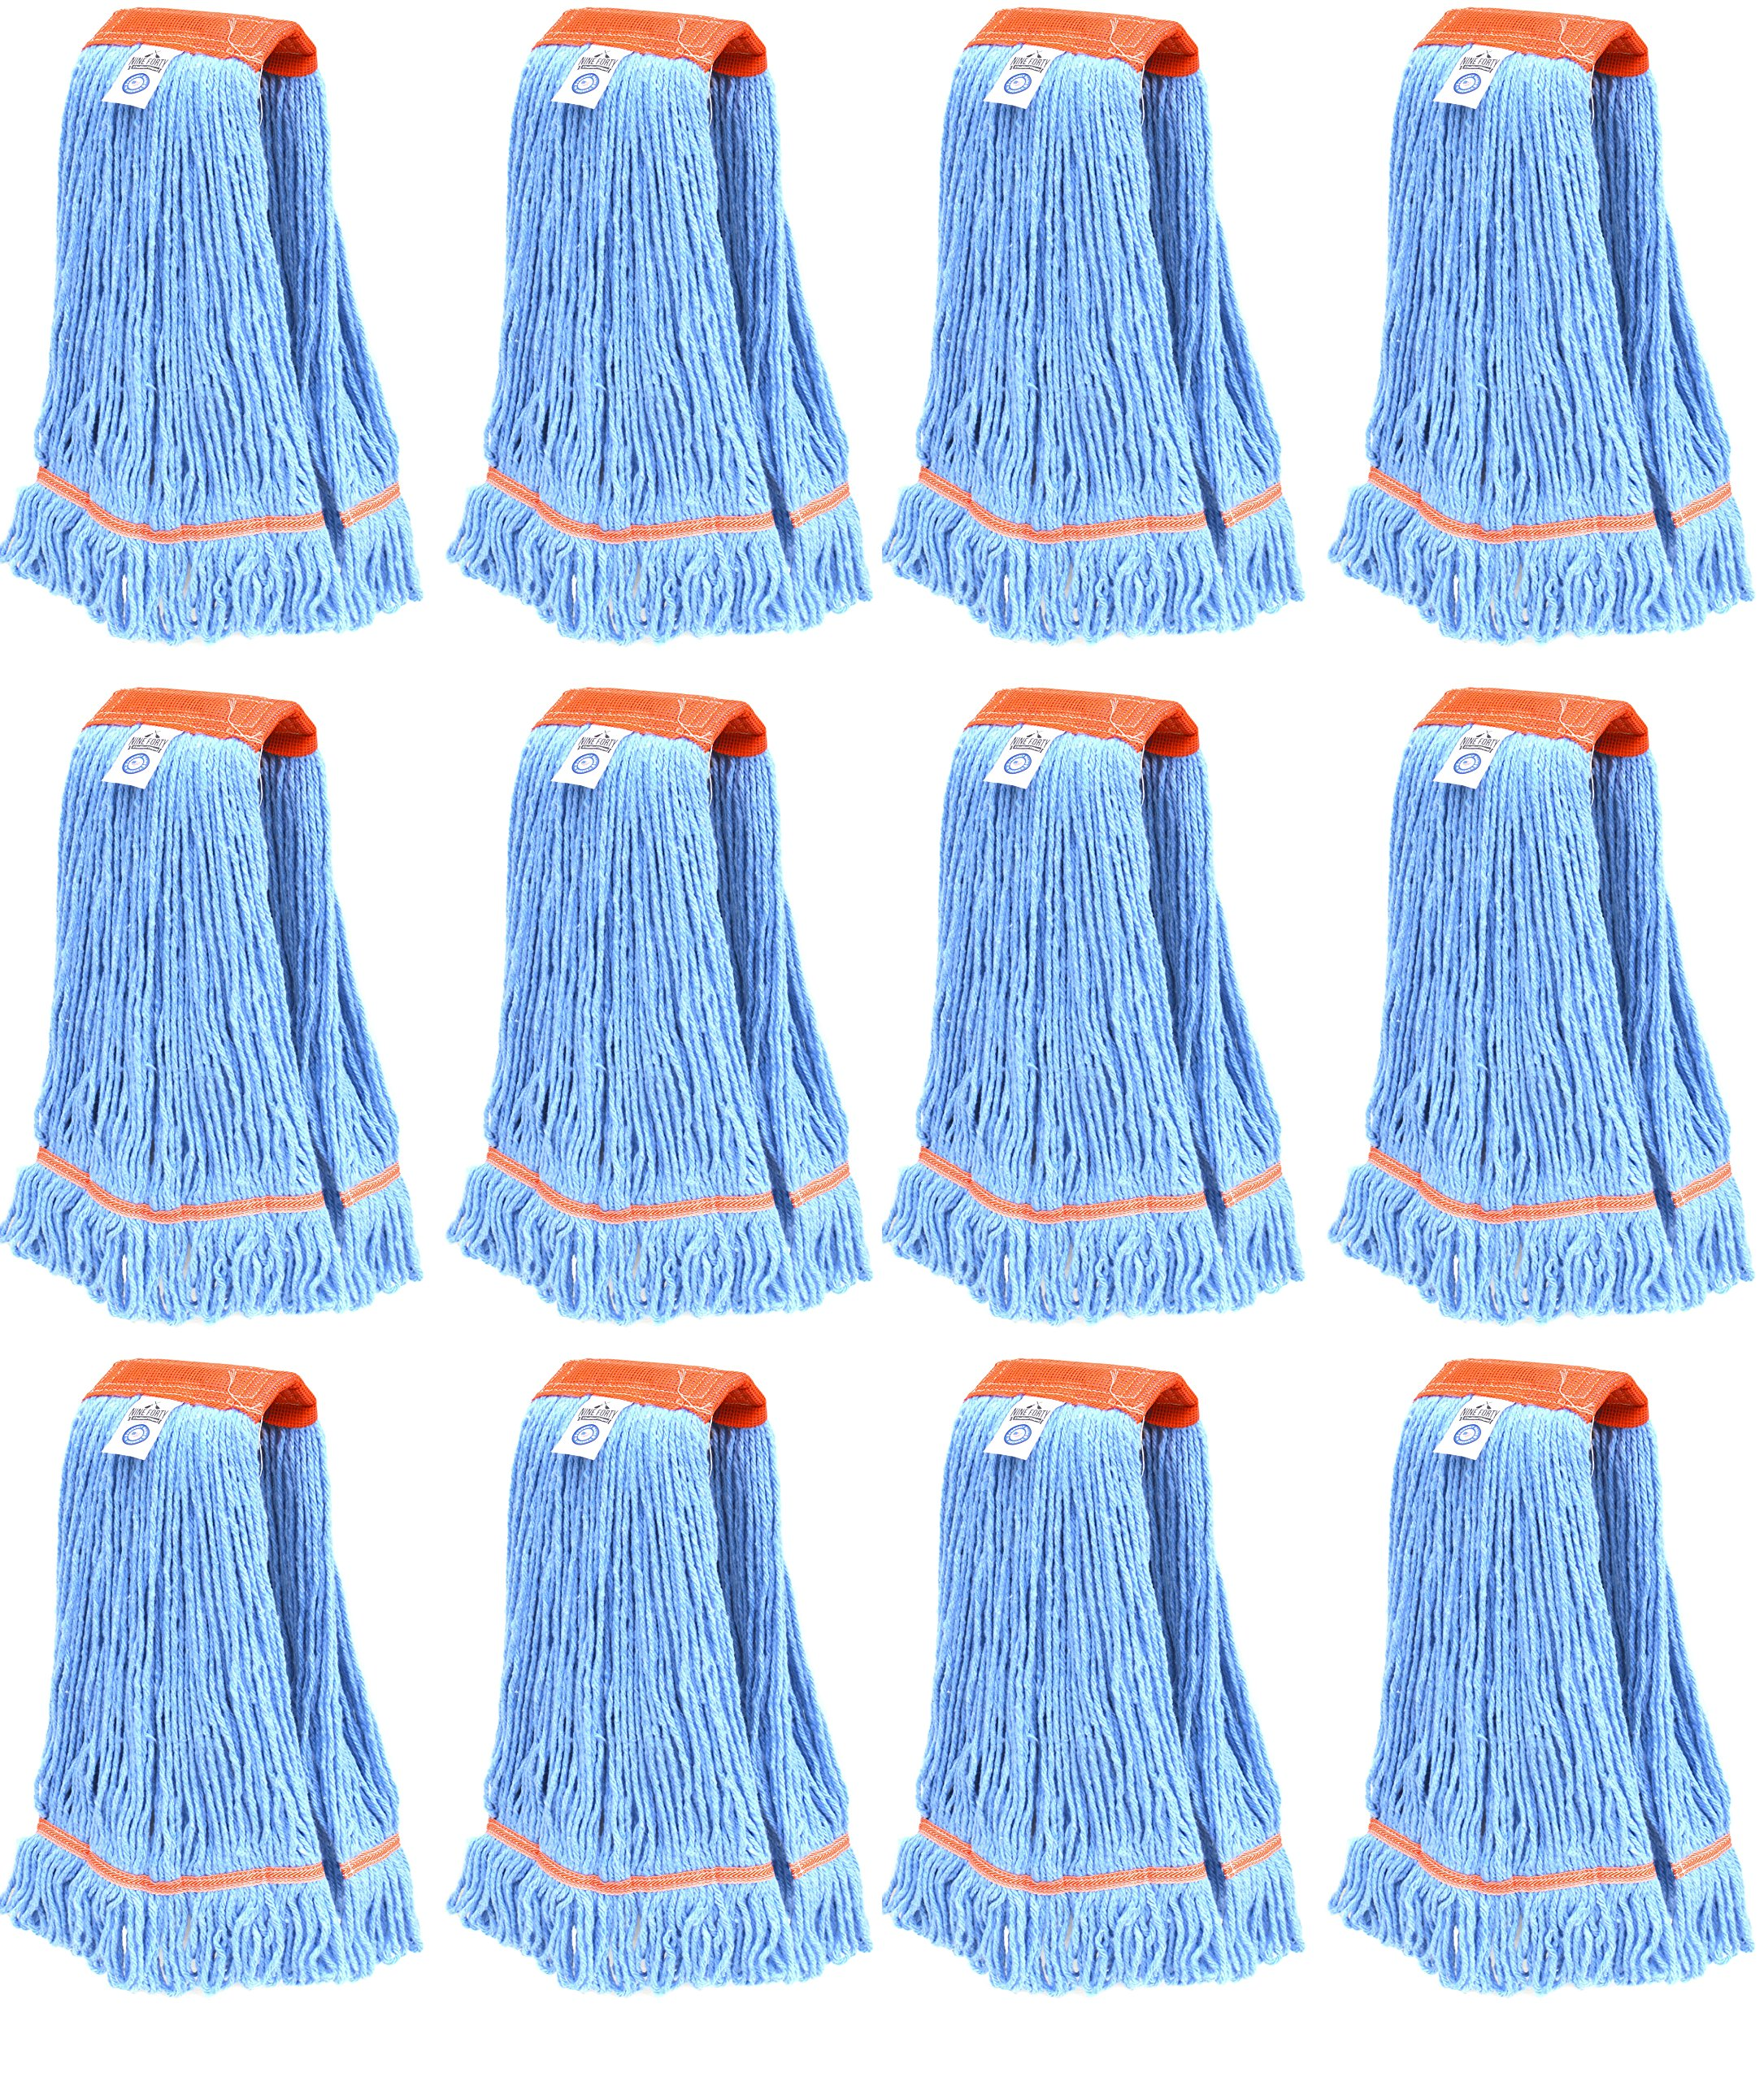 Nine Forty Industrial Strength Premium Looped End Wet Mop Head Refill – 4 Ply Synthetic Yarn (12, Large) by Nine Forty